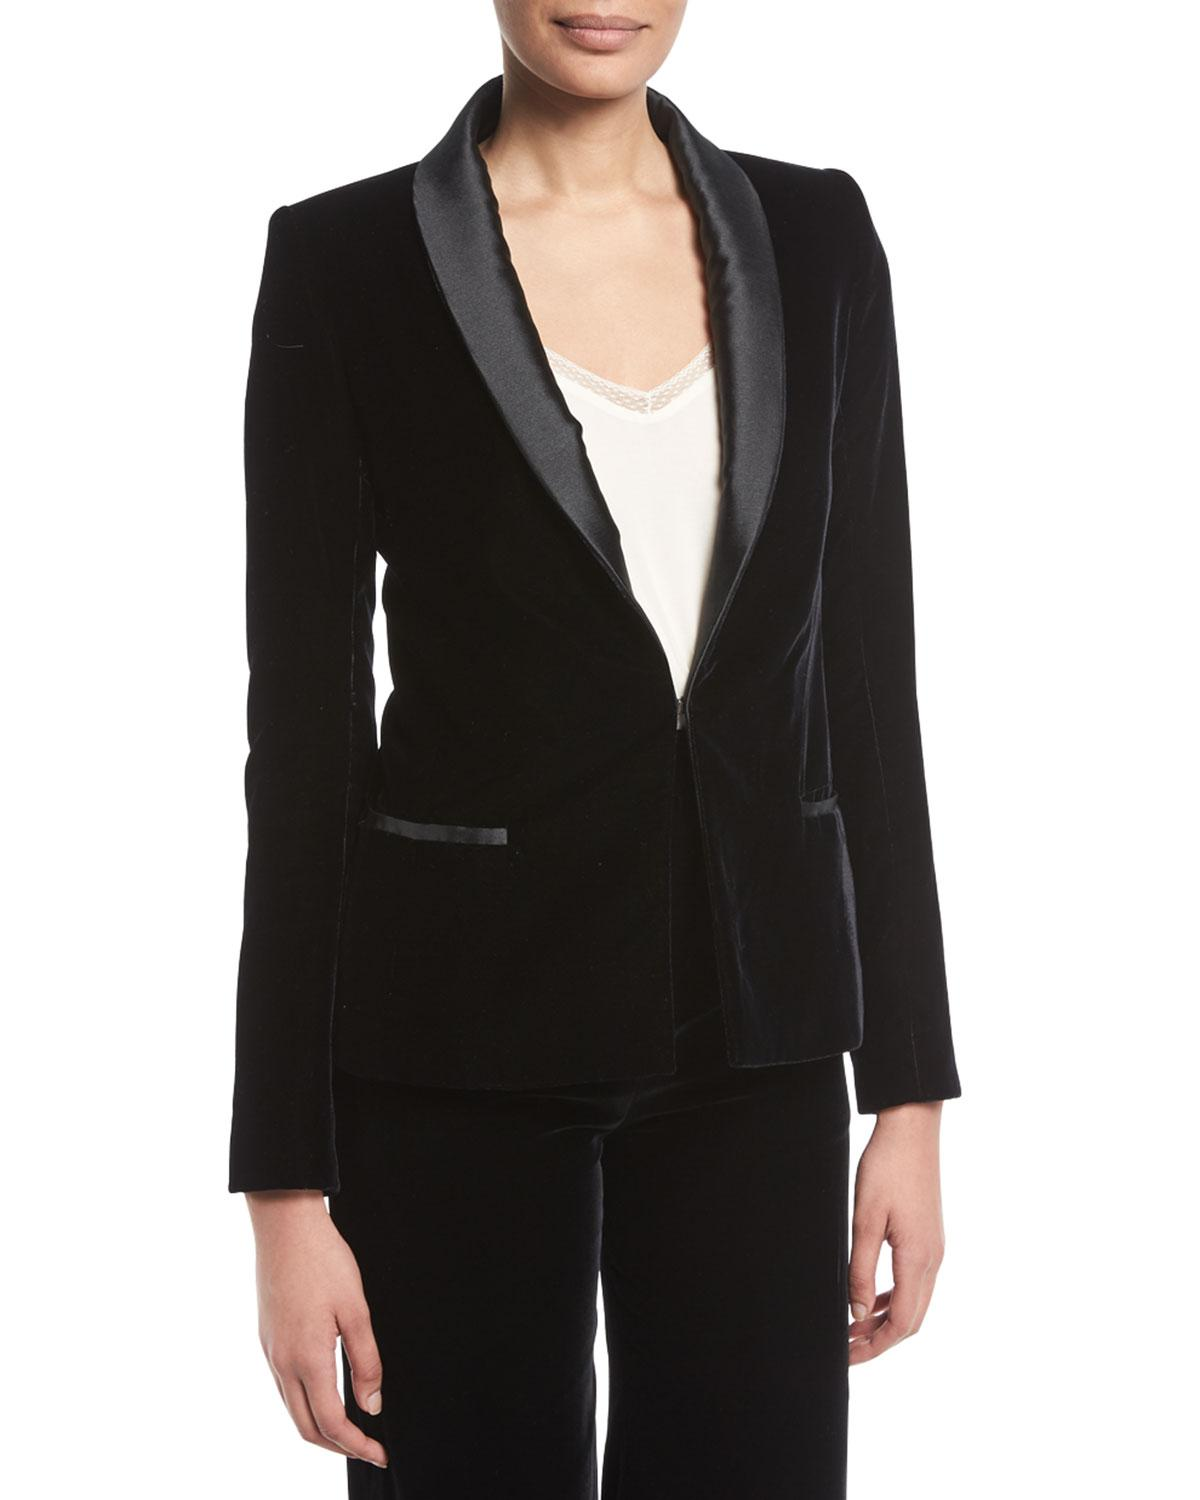 c1ec5719a090e Lyst - Brandon Maxwell Hook-front Velvet Smoking Jacket W/ Satin ...